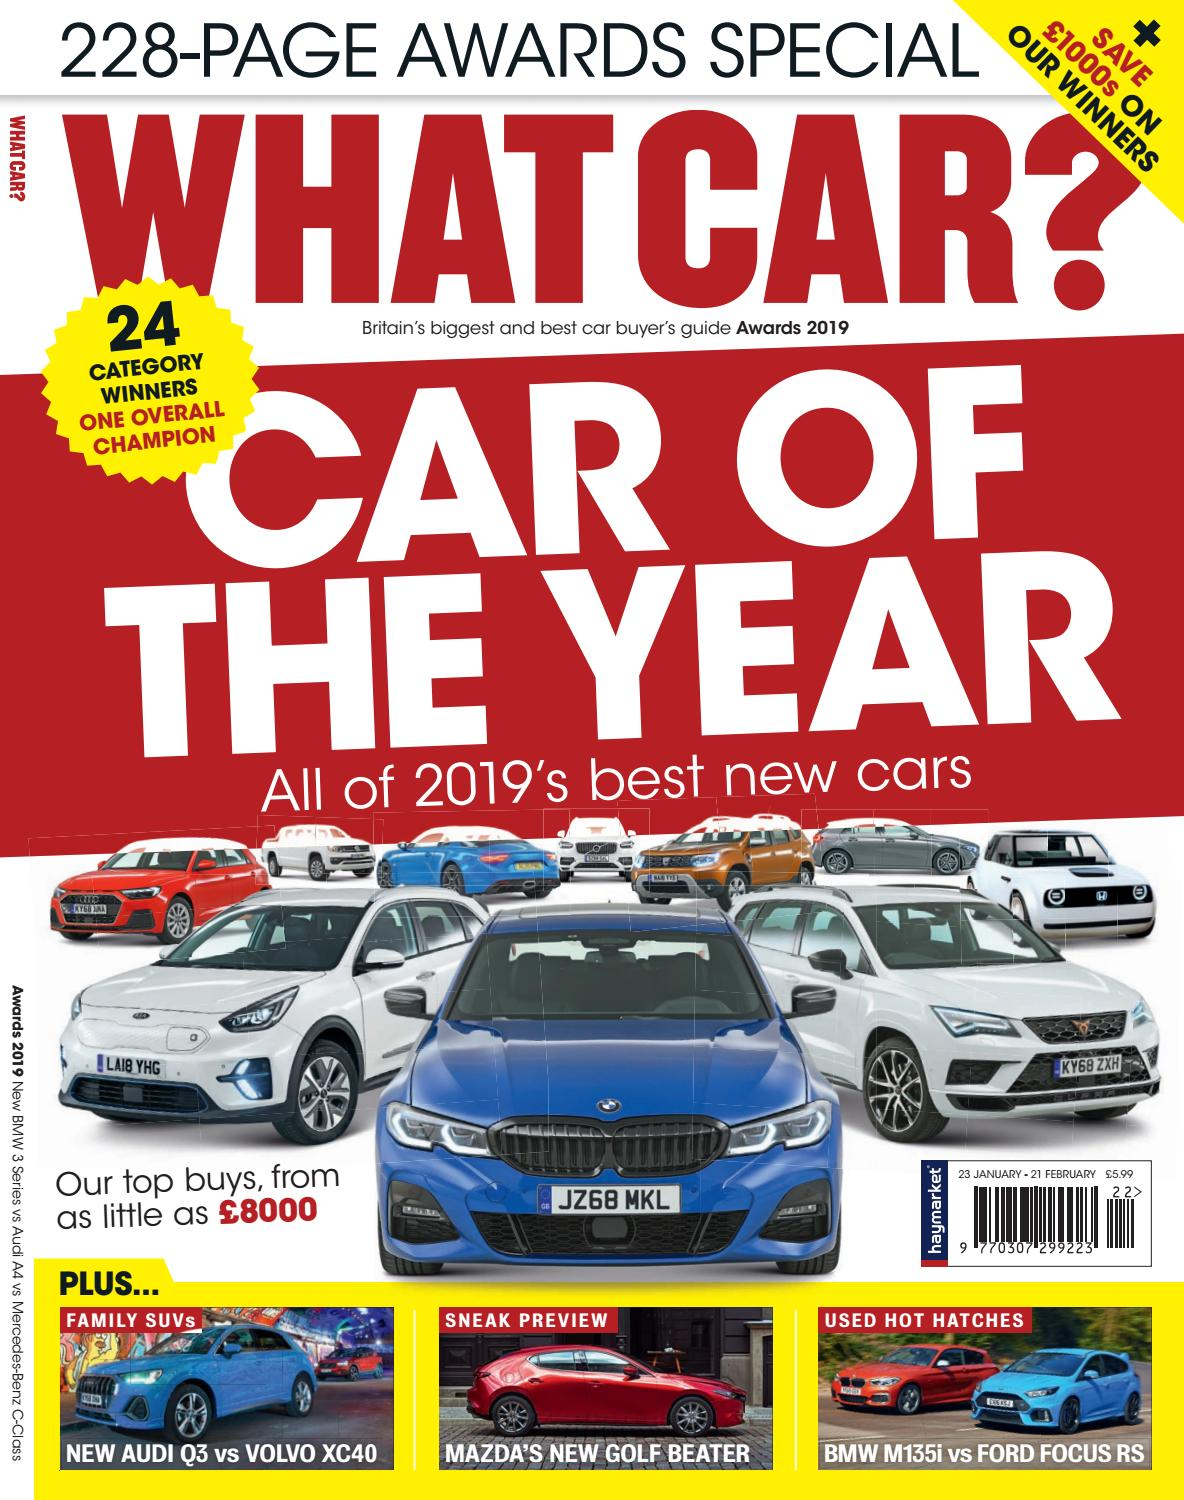 What Car? - Car of the year issue by Haymarket Consumer